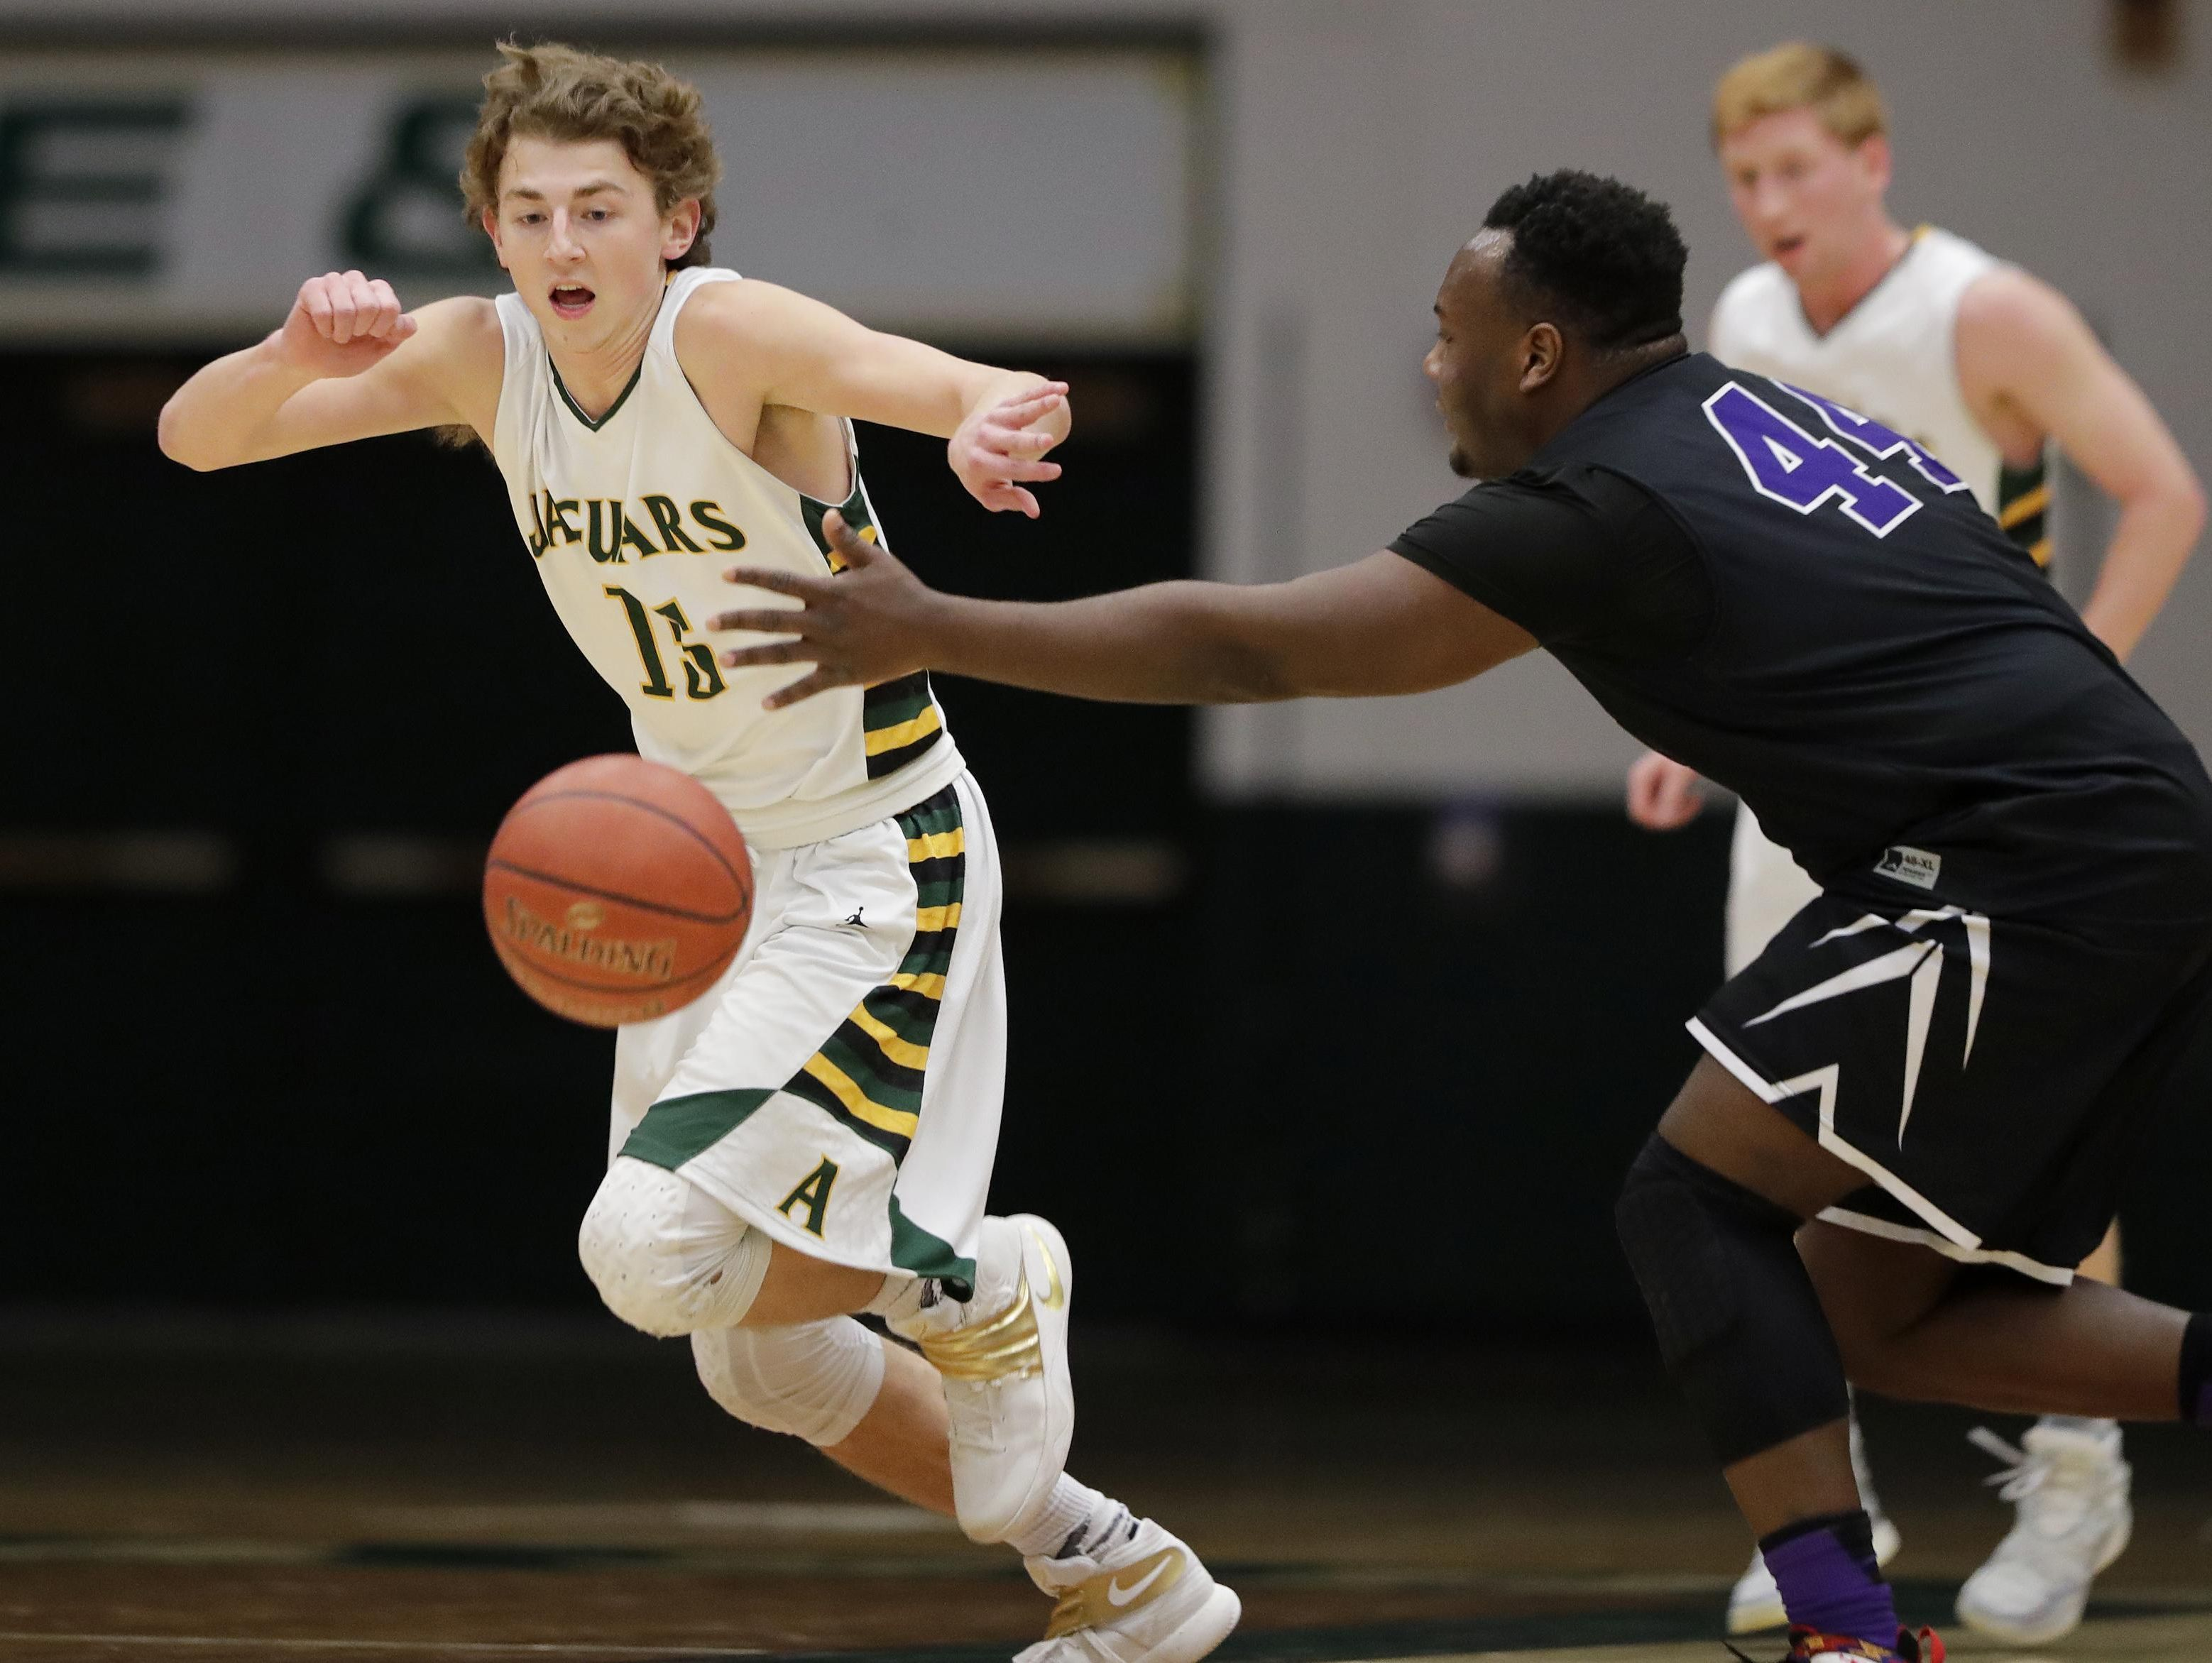 Ashwaubenon's Ben Wittig (15) steals the ball against Green Bay West's Anthony King (44) in a WIAA Division 2 regional quarterfinal at Ashwaubenon on Tuesday. See more photos from the game at greenbaypressgazette.com.